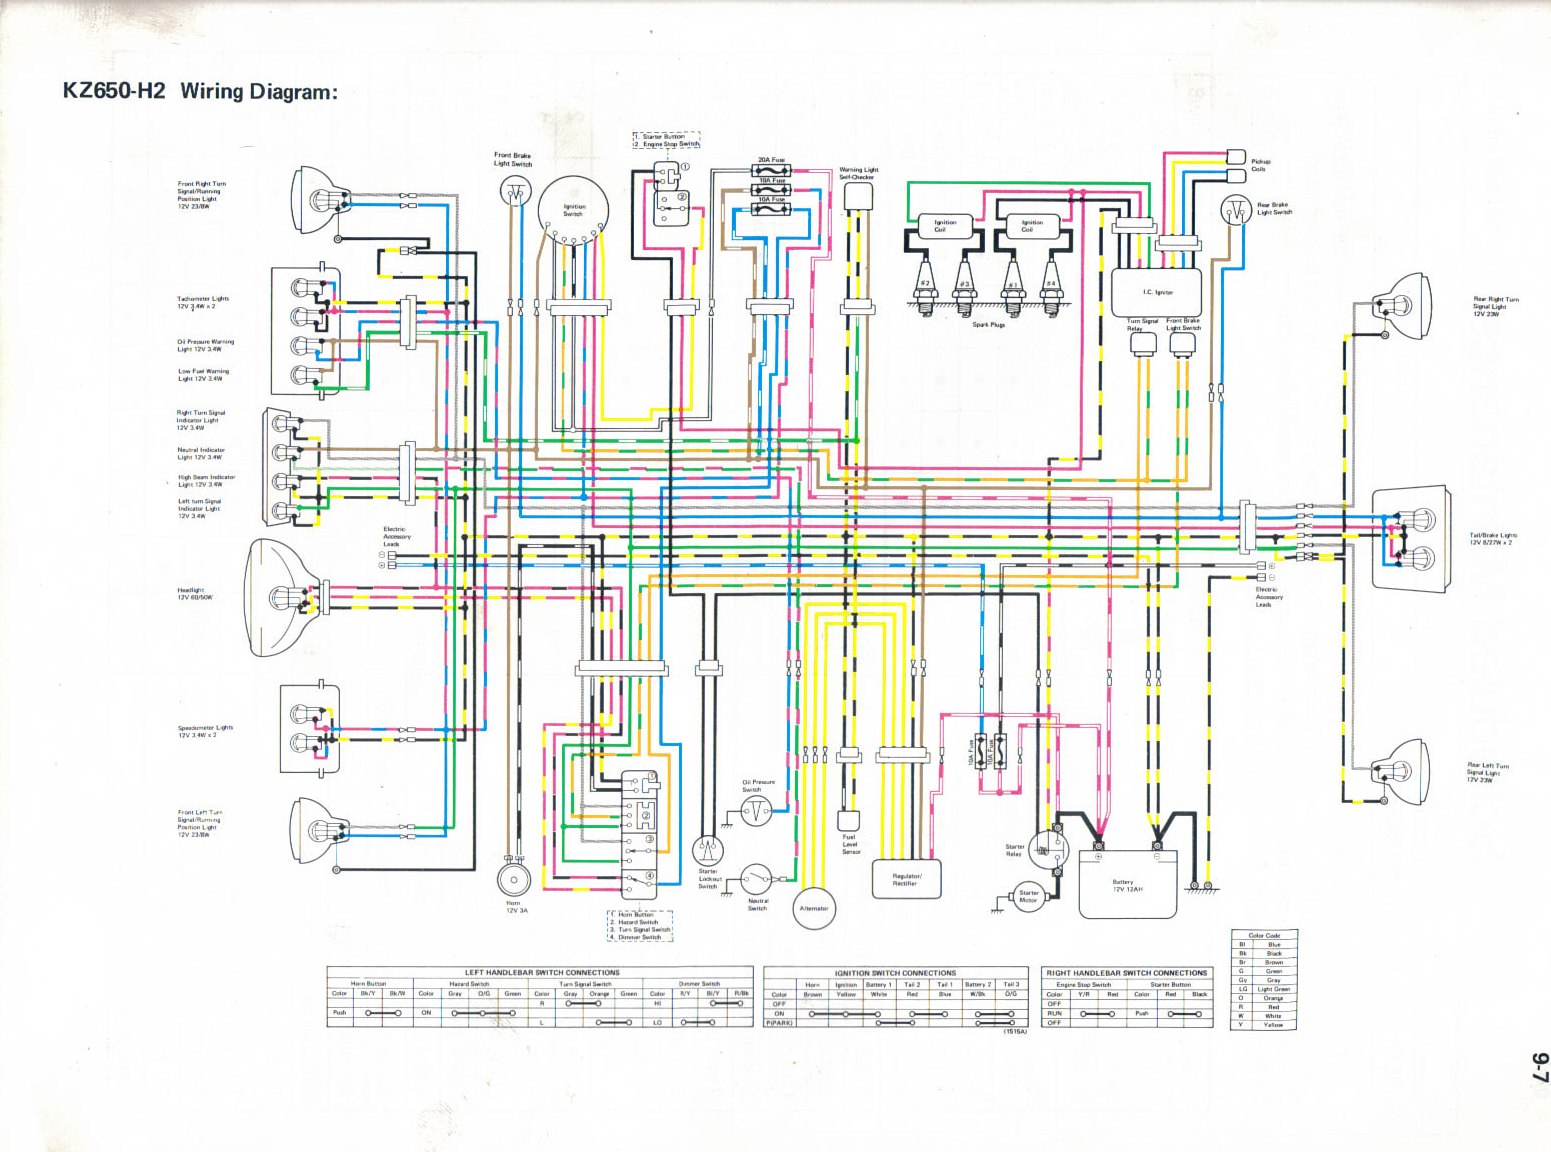 KZ650 H2 kz650 info wiring diagrams Industrial Wiring Diagrams at gsmx.co